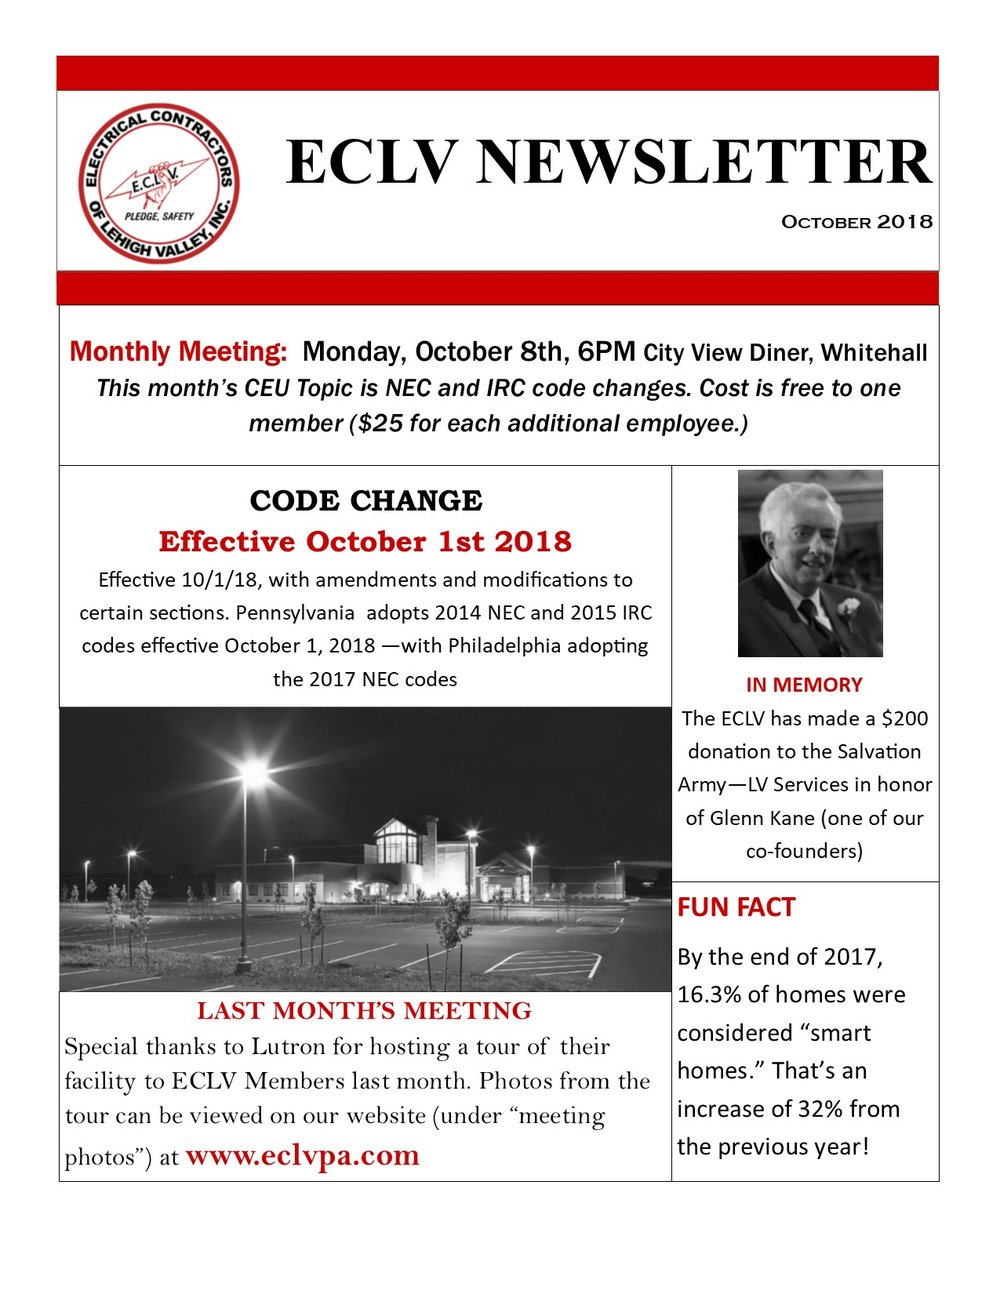 ECLV October newsletter.jpg